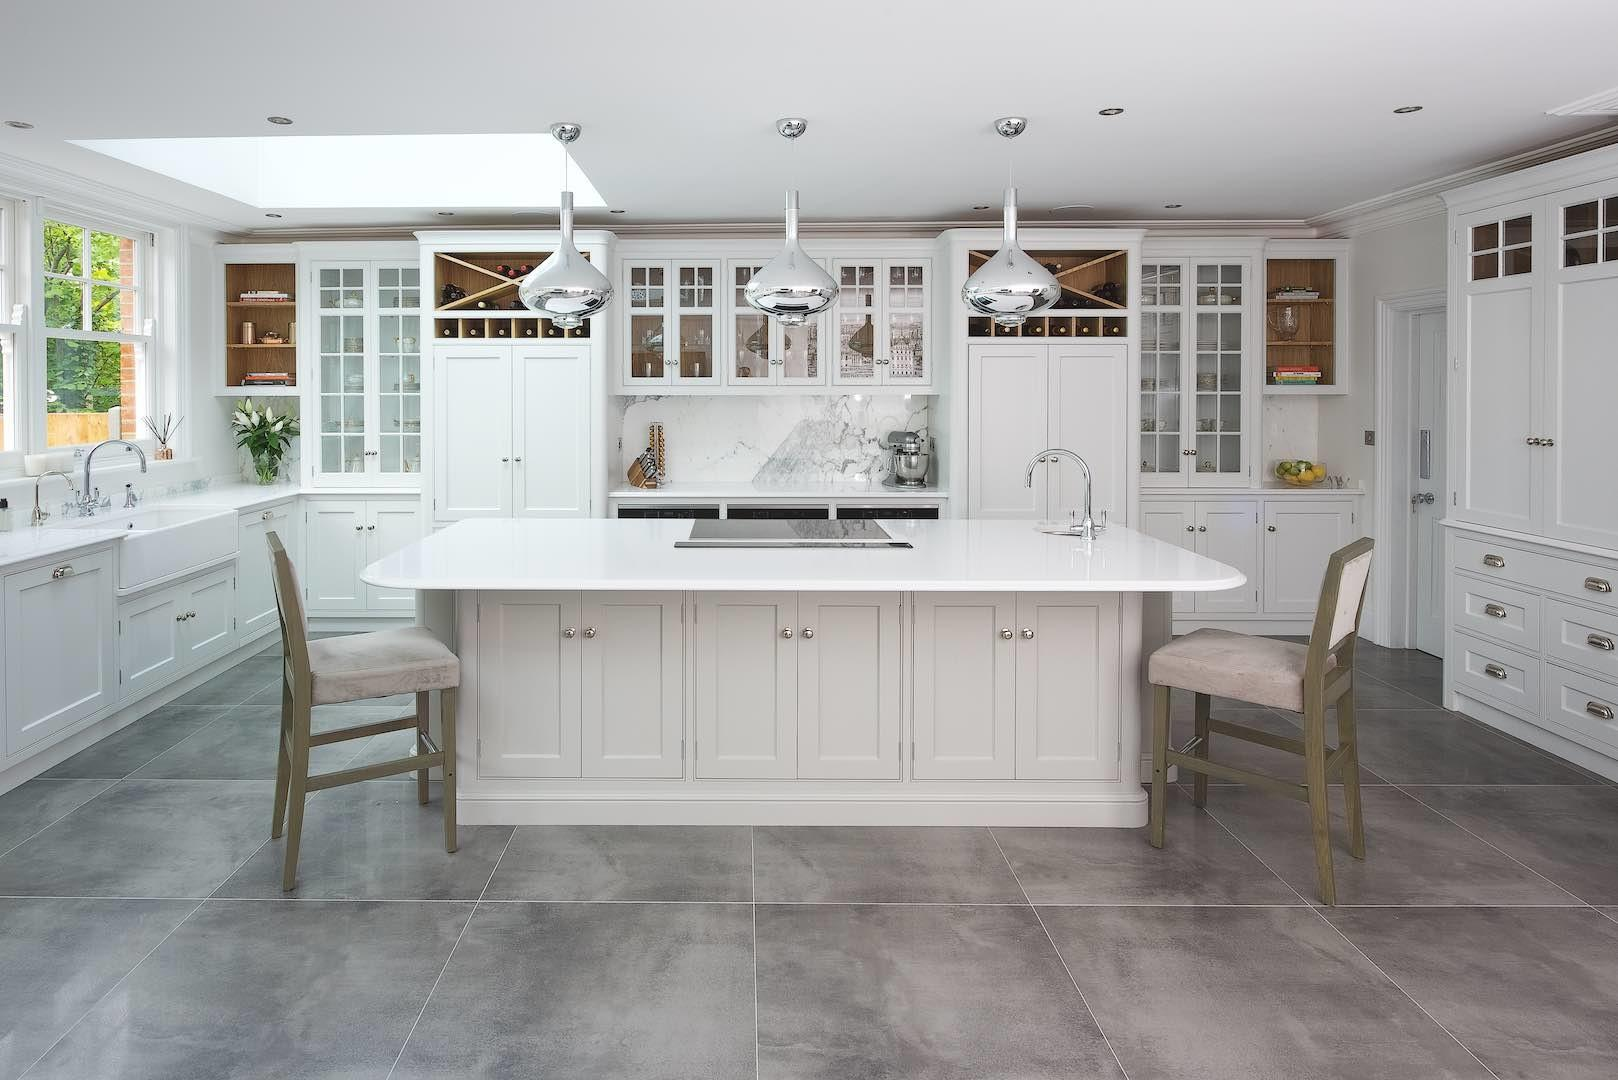 100 Bespoke Designer Kitchens 252 Best